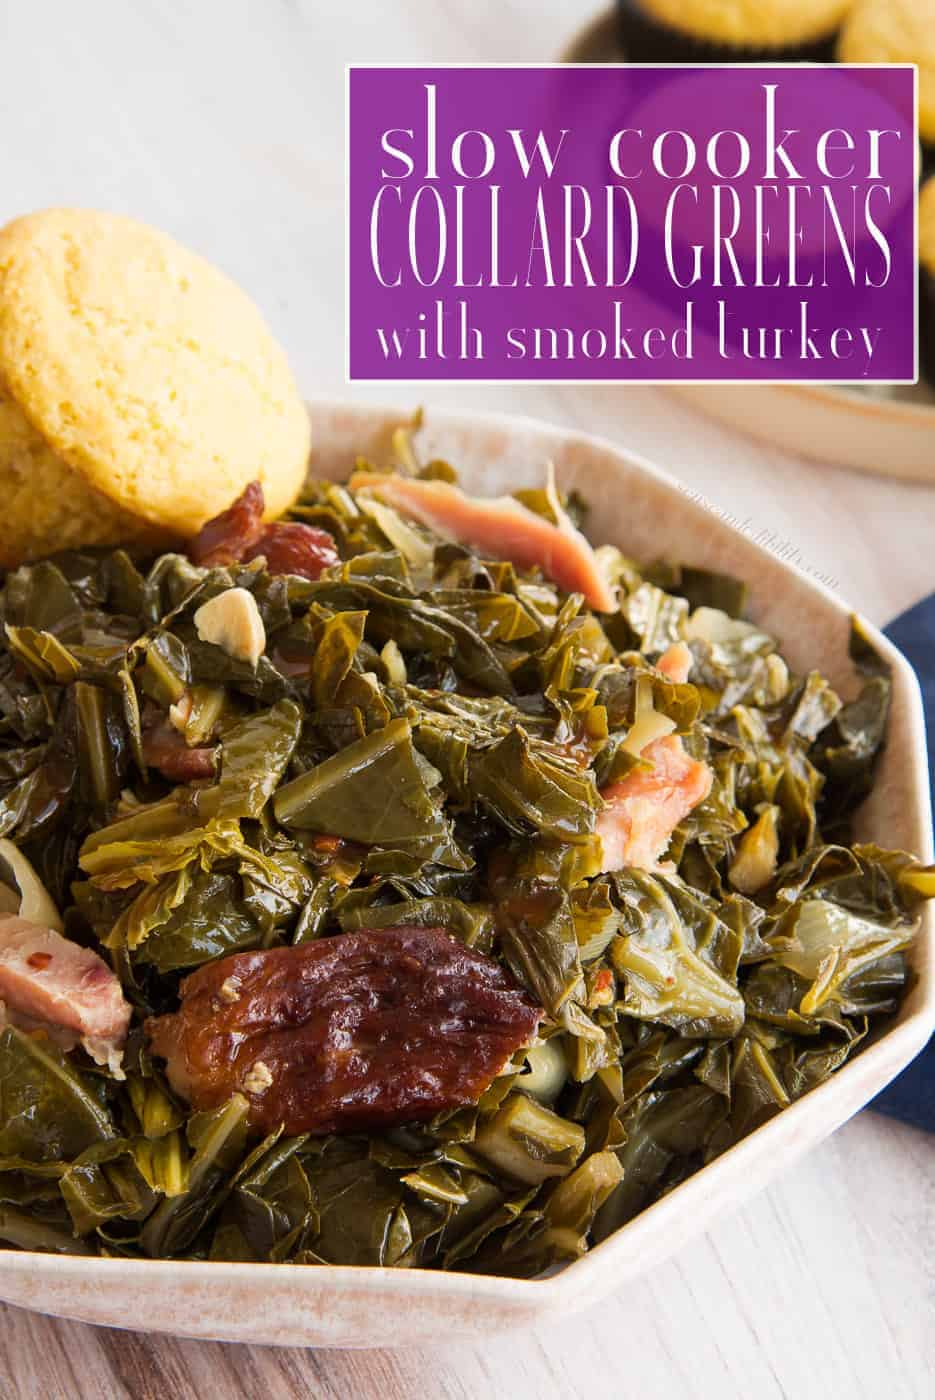 Leave your slow cooker to do all of the work with these Country-Style Slow Cooker Collard Greens with Smoked Turkey. Flavorful, tender, and so easy to make, this will be a favorite recipe to cook and eat. Freezer-friendly, too. Use smoked turkey or smoked pork. #collardgreens #smokedturkey #slowcookerrecipe #collardgreensrecipes #holidayrecipes #greensrecipe #holidaygreens #smokedhamhocks #smokedturkeywings #smokedturkeylegs #smokedneckbones #Thanksgivingrecipe #Christmasrecipe #familydinner #sundaydinner via @ediblesense